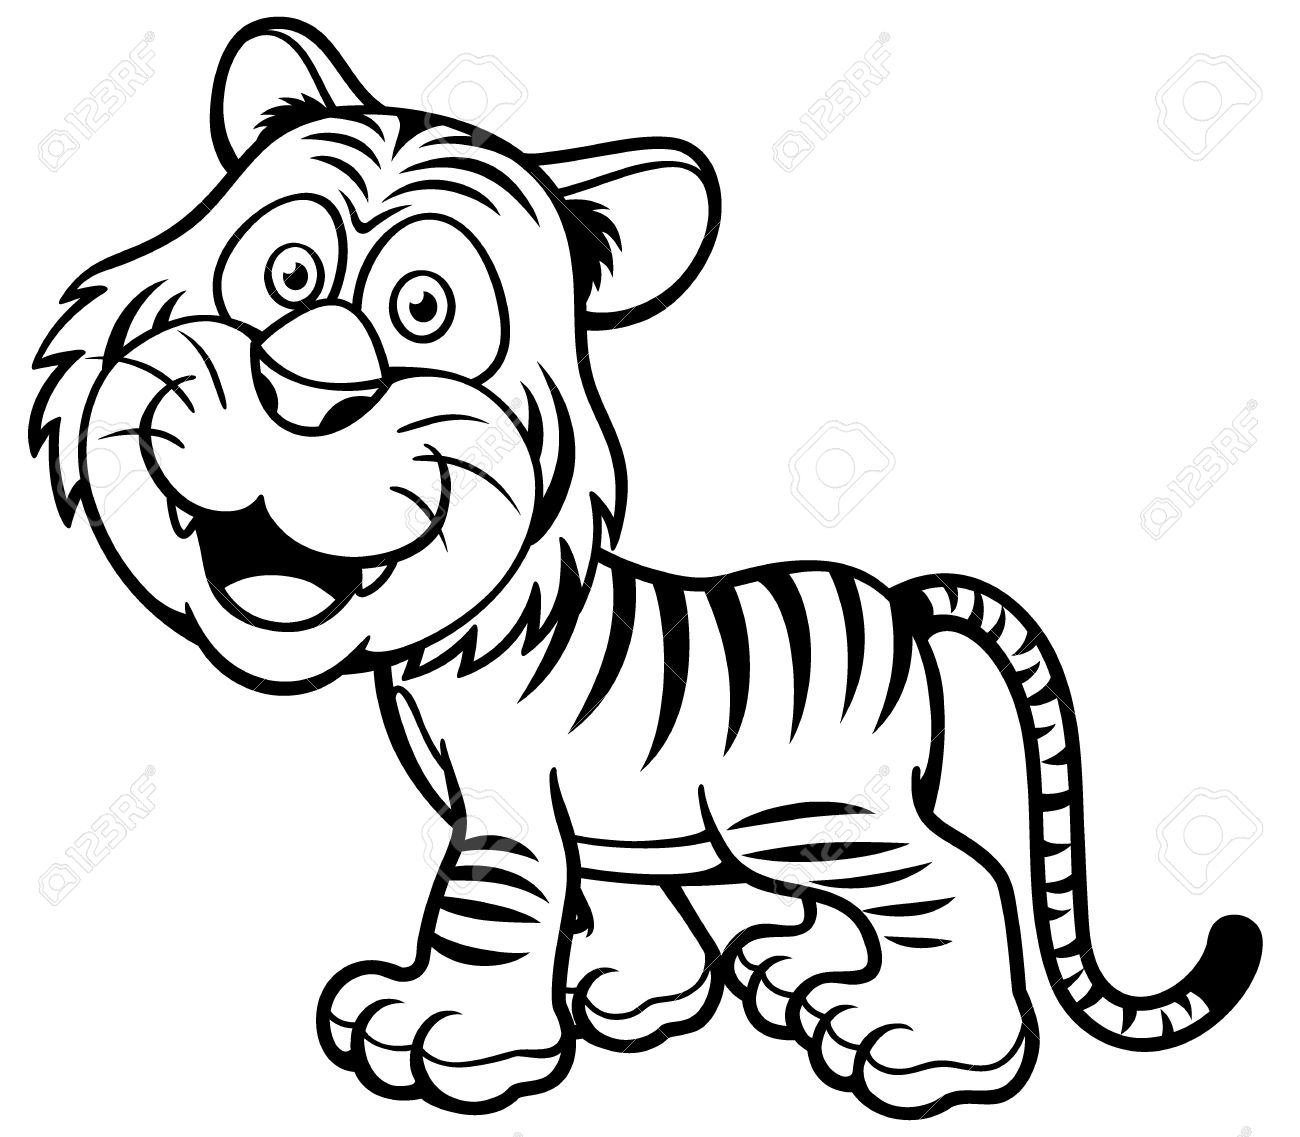 Tiger 1 color clipart picture stock Picture Of Tiger To Color - eassume.com picture stock